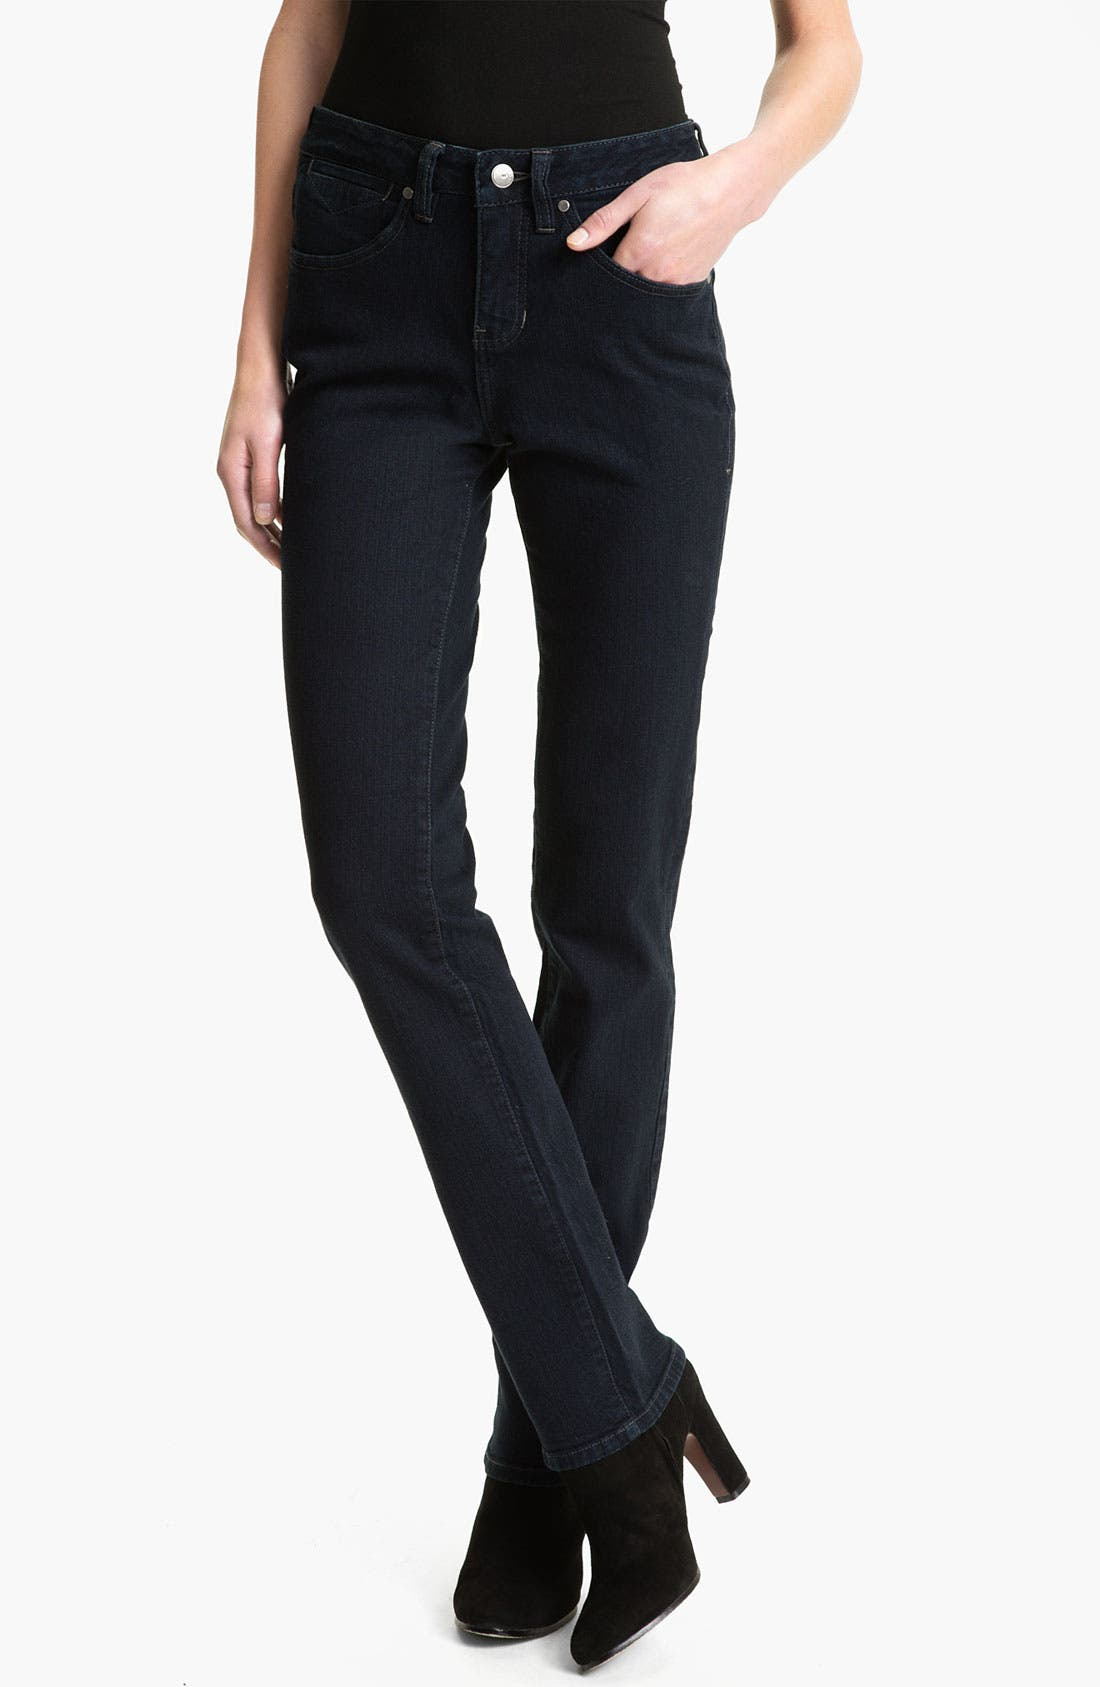 Main Image - Jag Jeans 'Donovan' Straight Leg Jeans (After Midnight) (Petite)